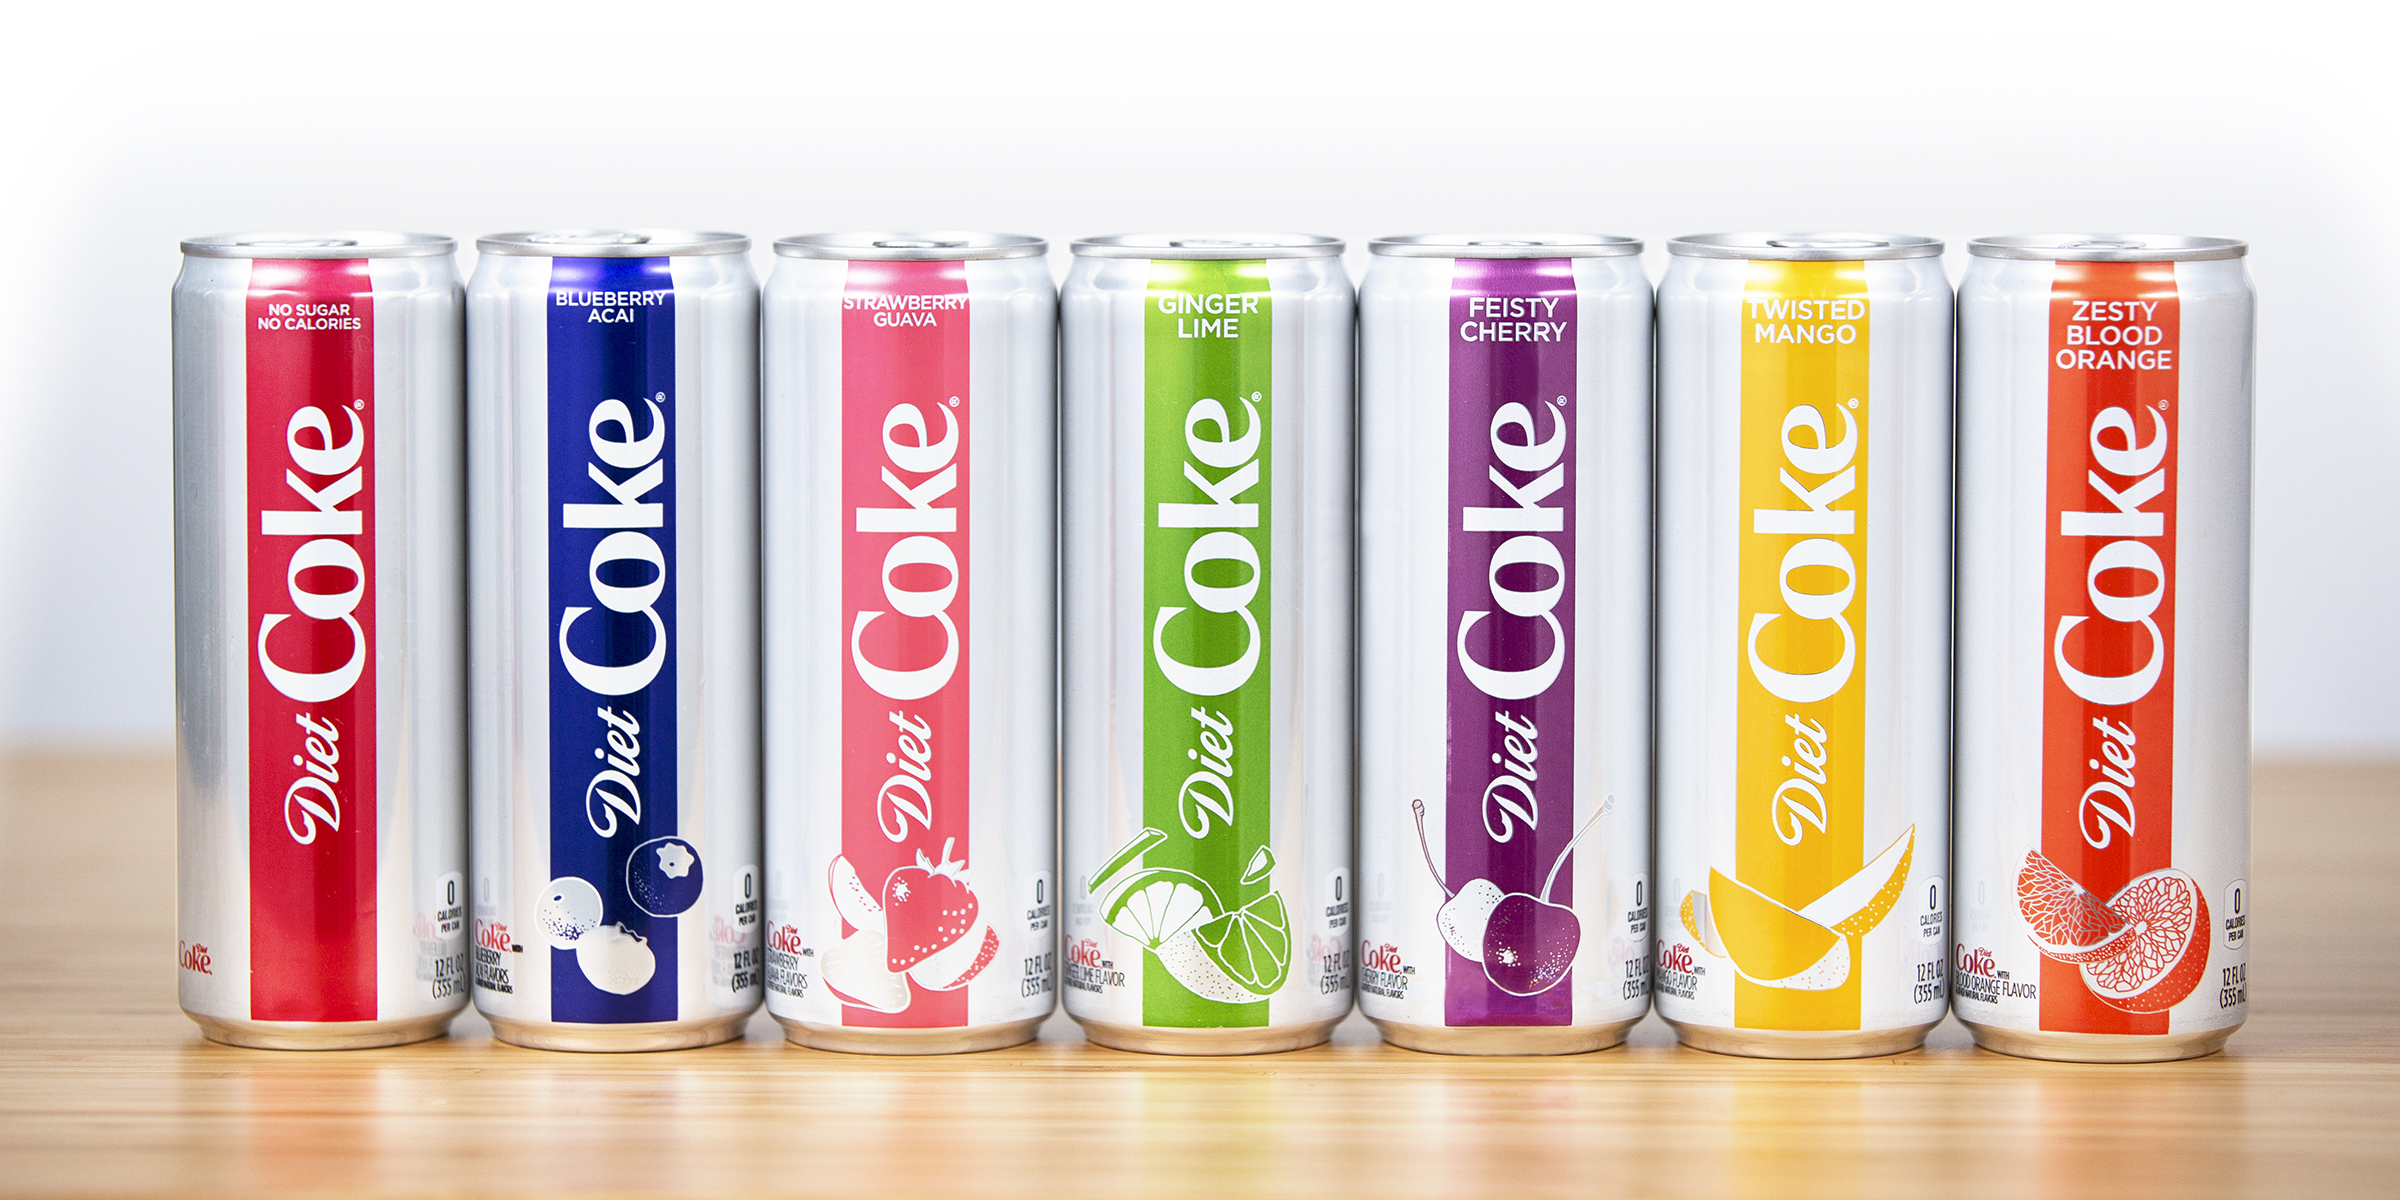 are new diet coke cans a different recipe